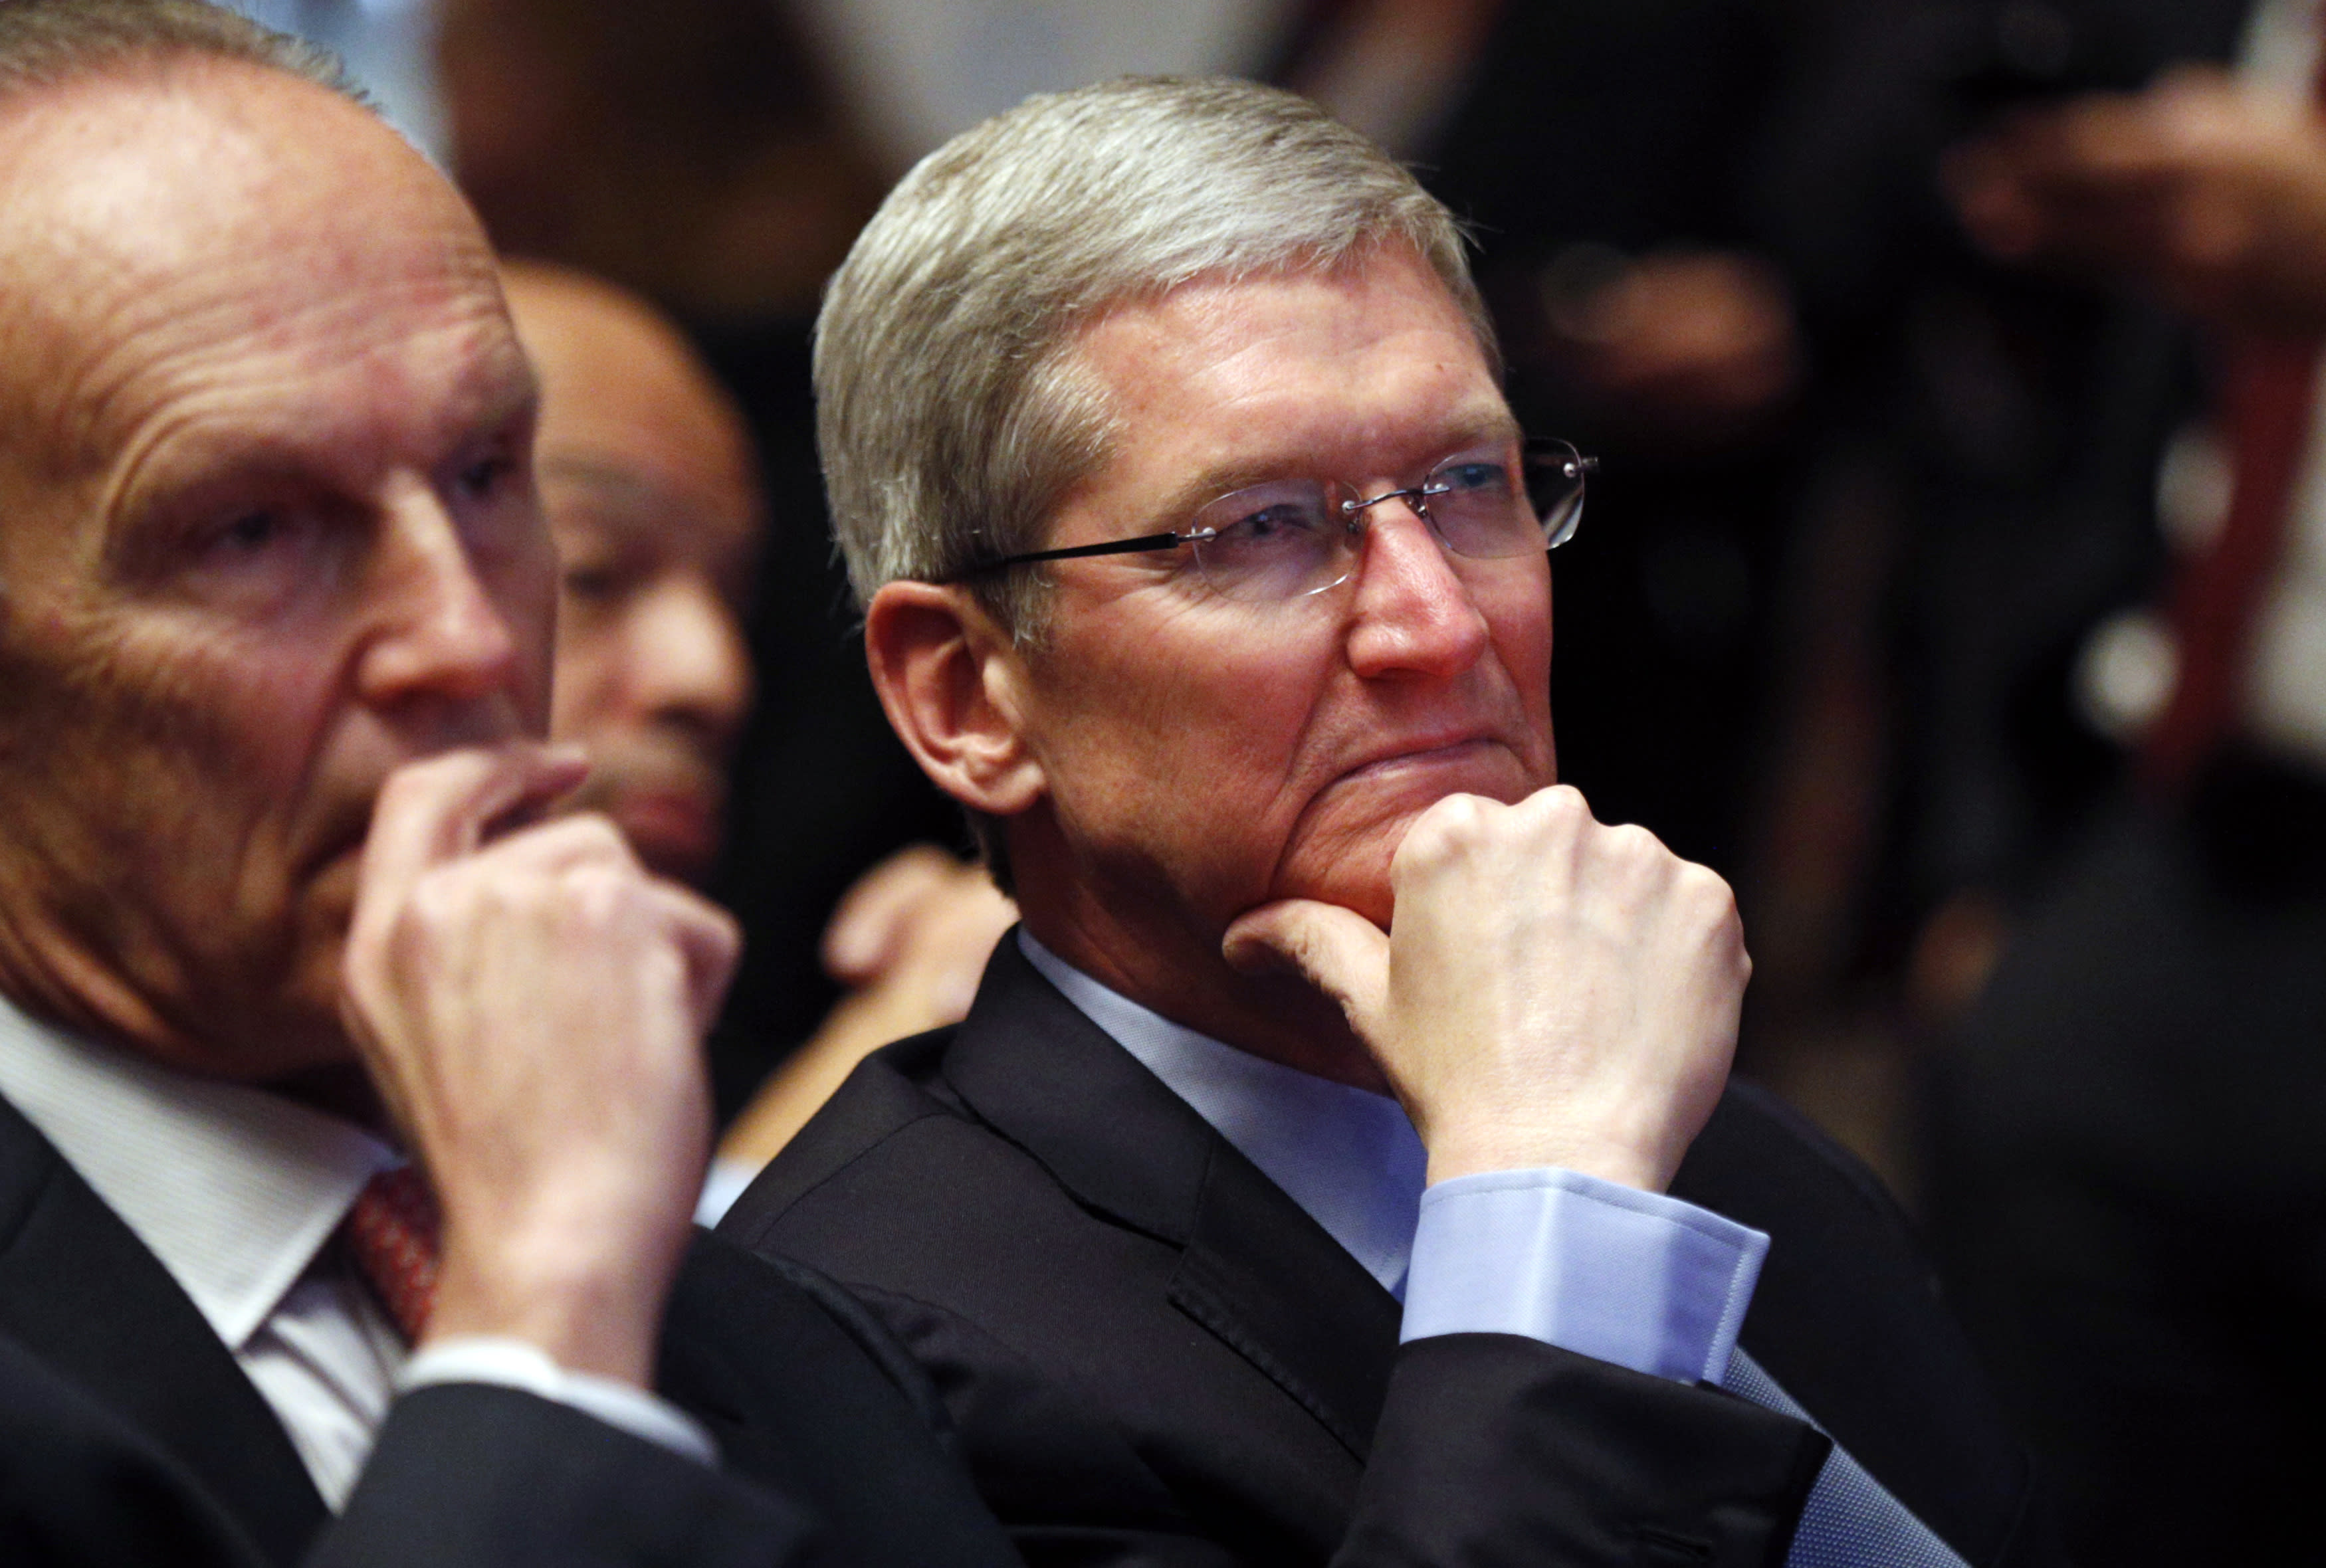 CREDIT SUISSE: Apple's newest iPhone is underperforming, but a mini iPhone could save the day